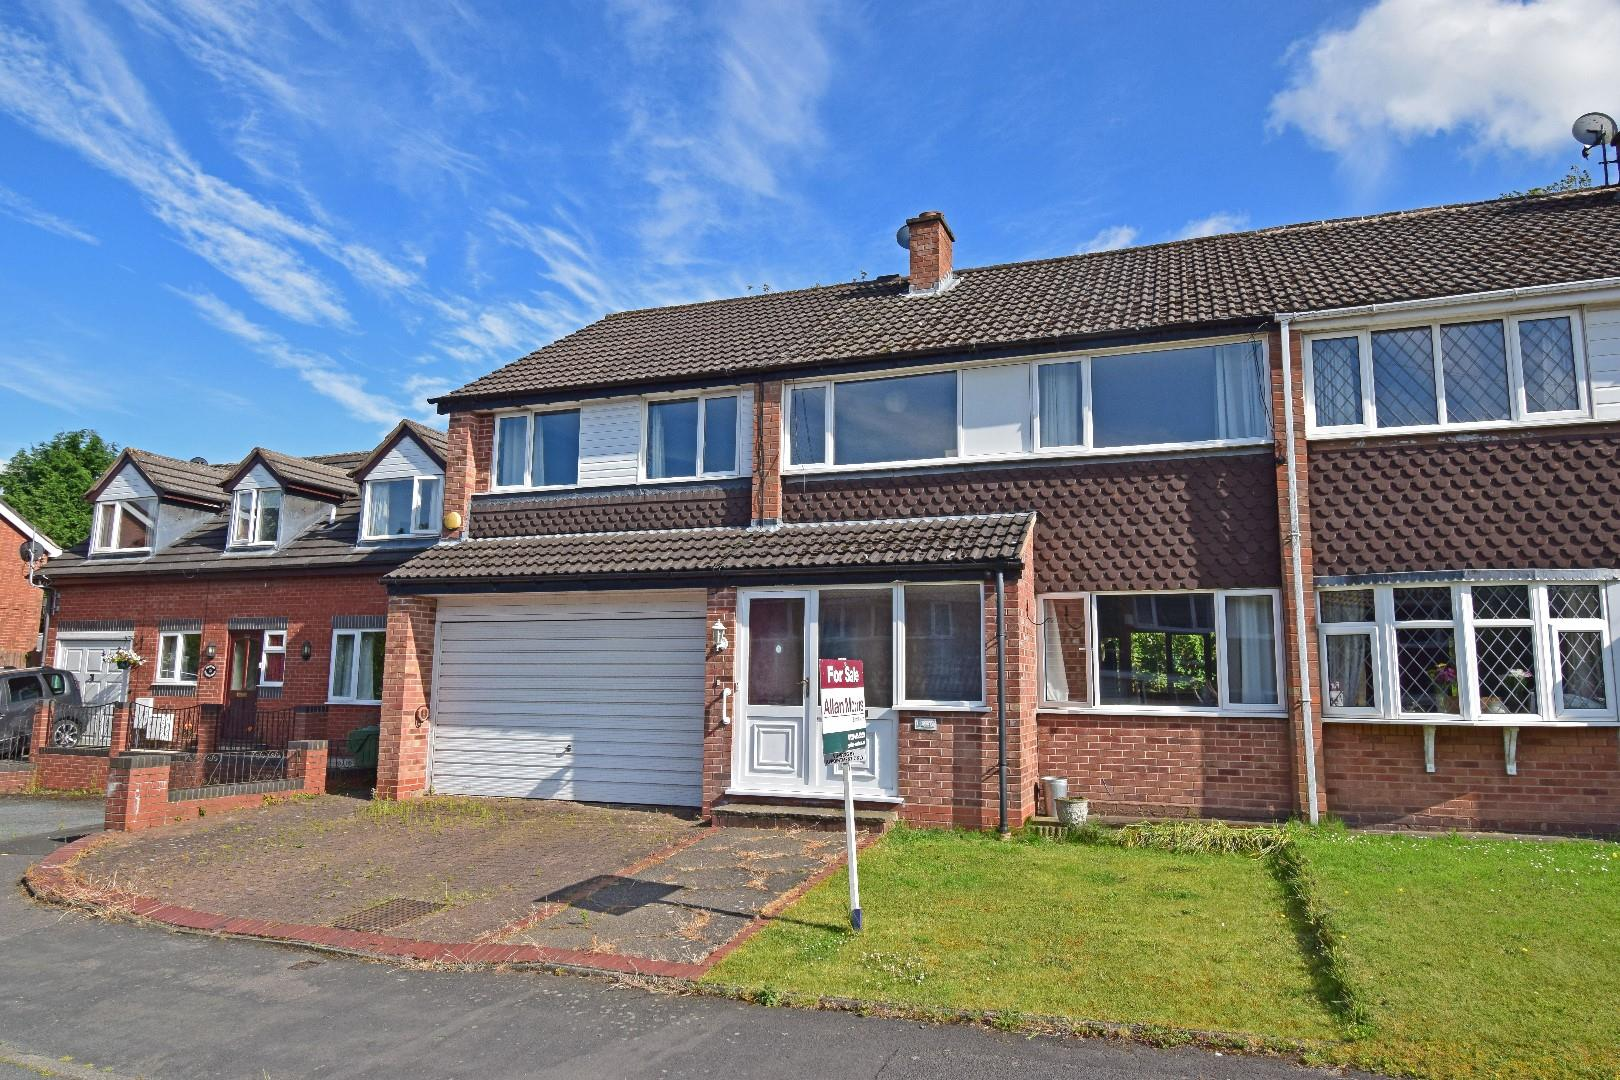 26 Bear Hill Drive, Alvechurch, B48 7RG